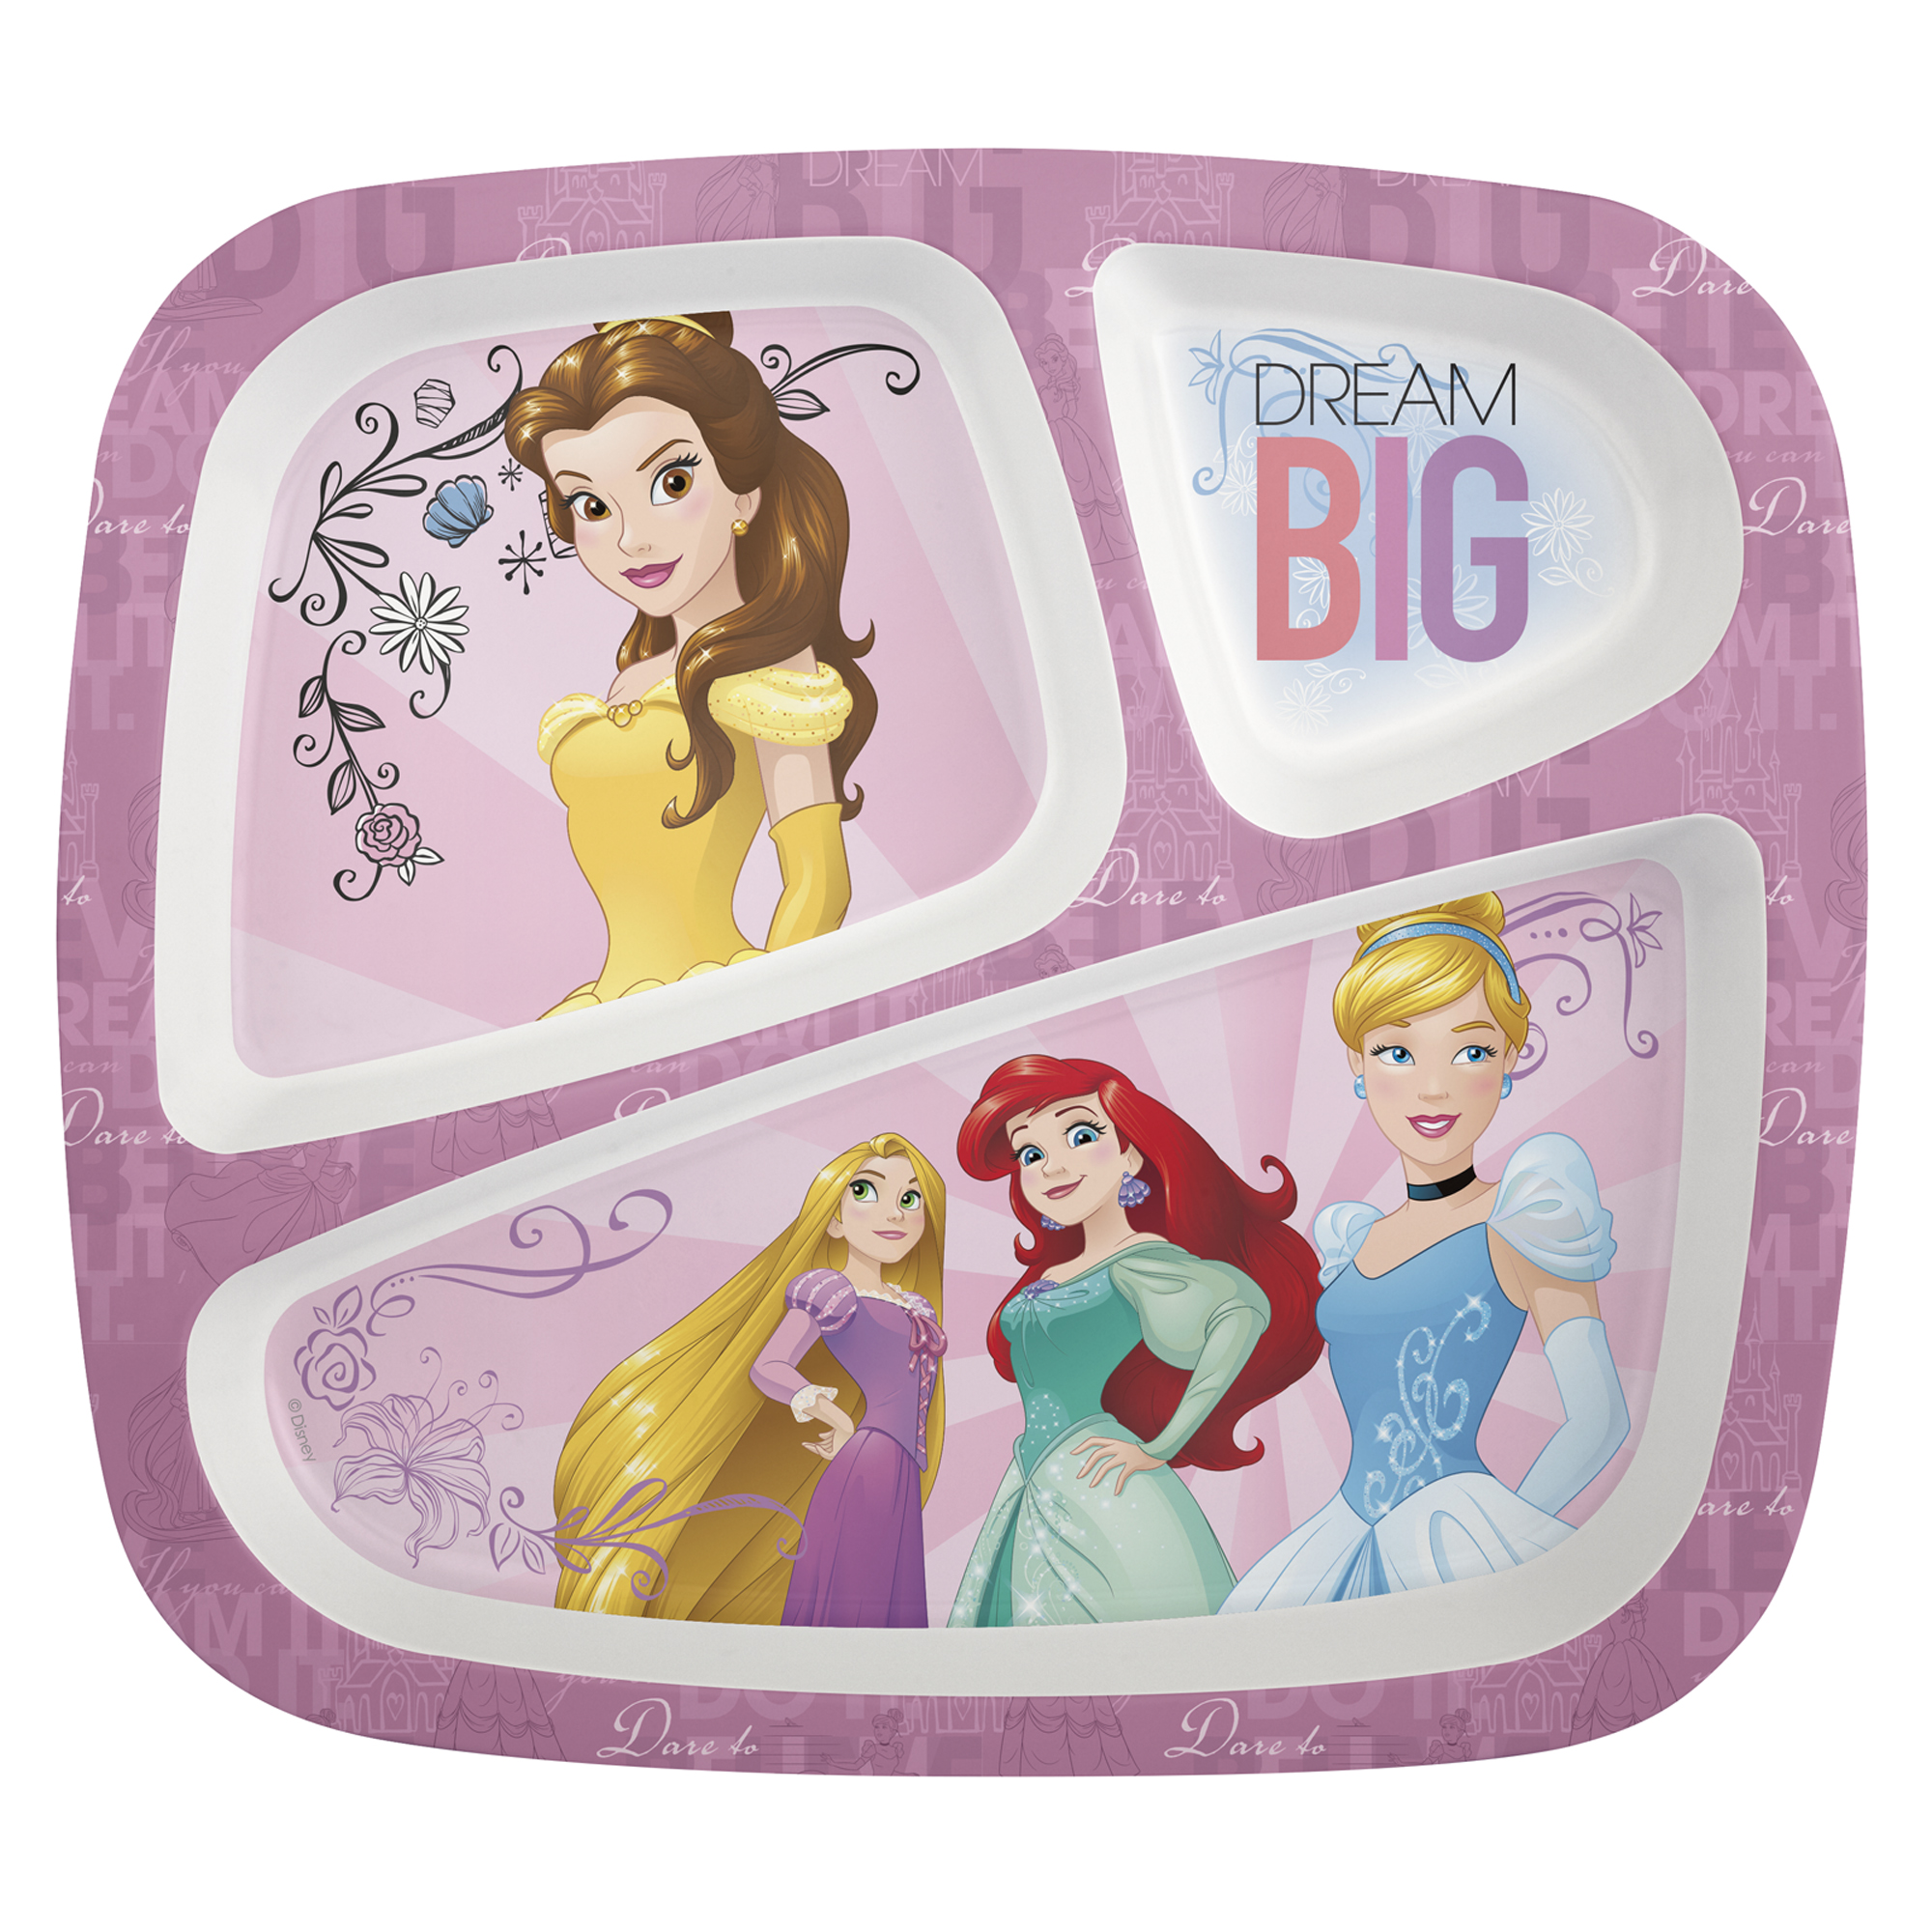 Disney Princess Divided Plates for Kids by Zak!